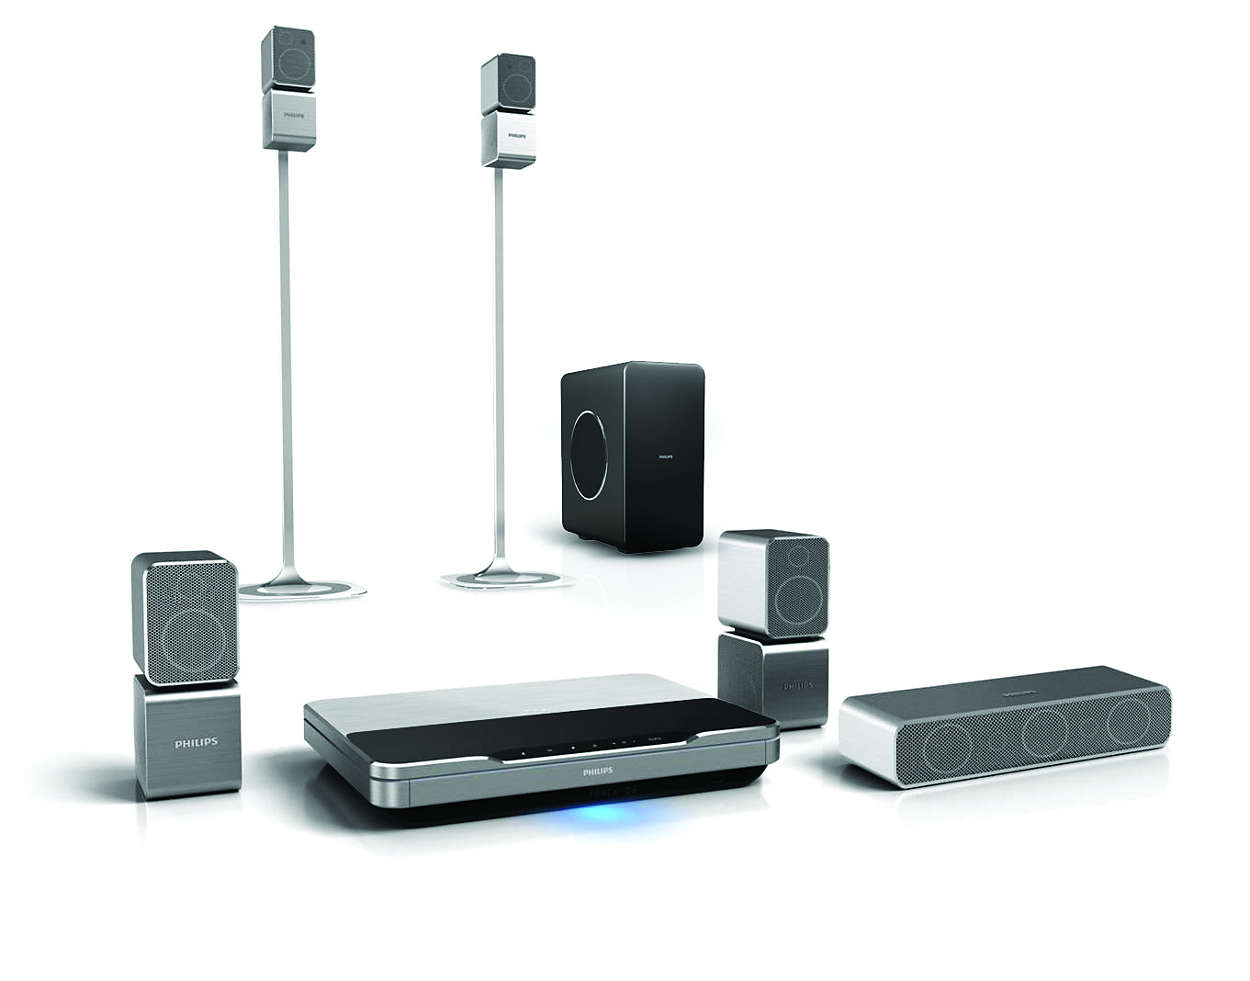 5.1 Home theater HTS9520/51 | Philips